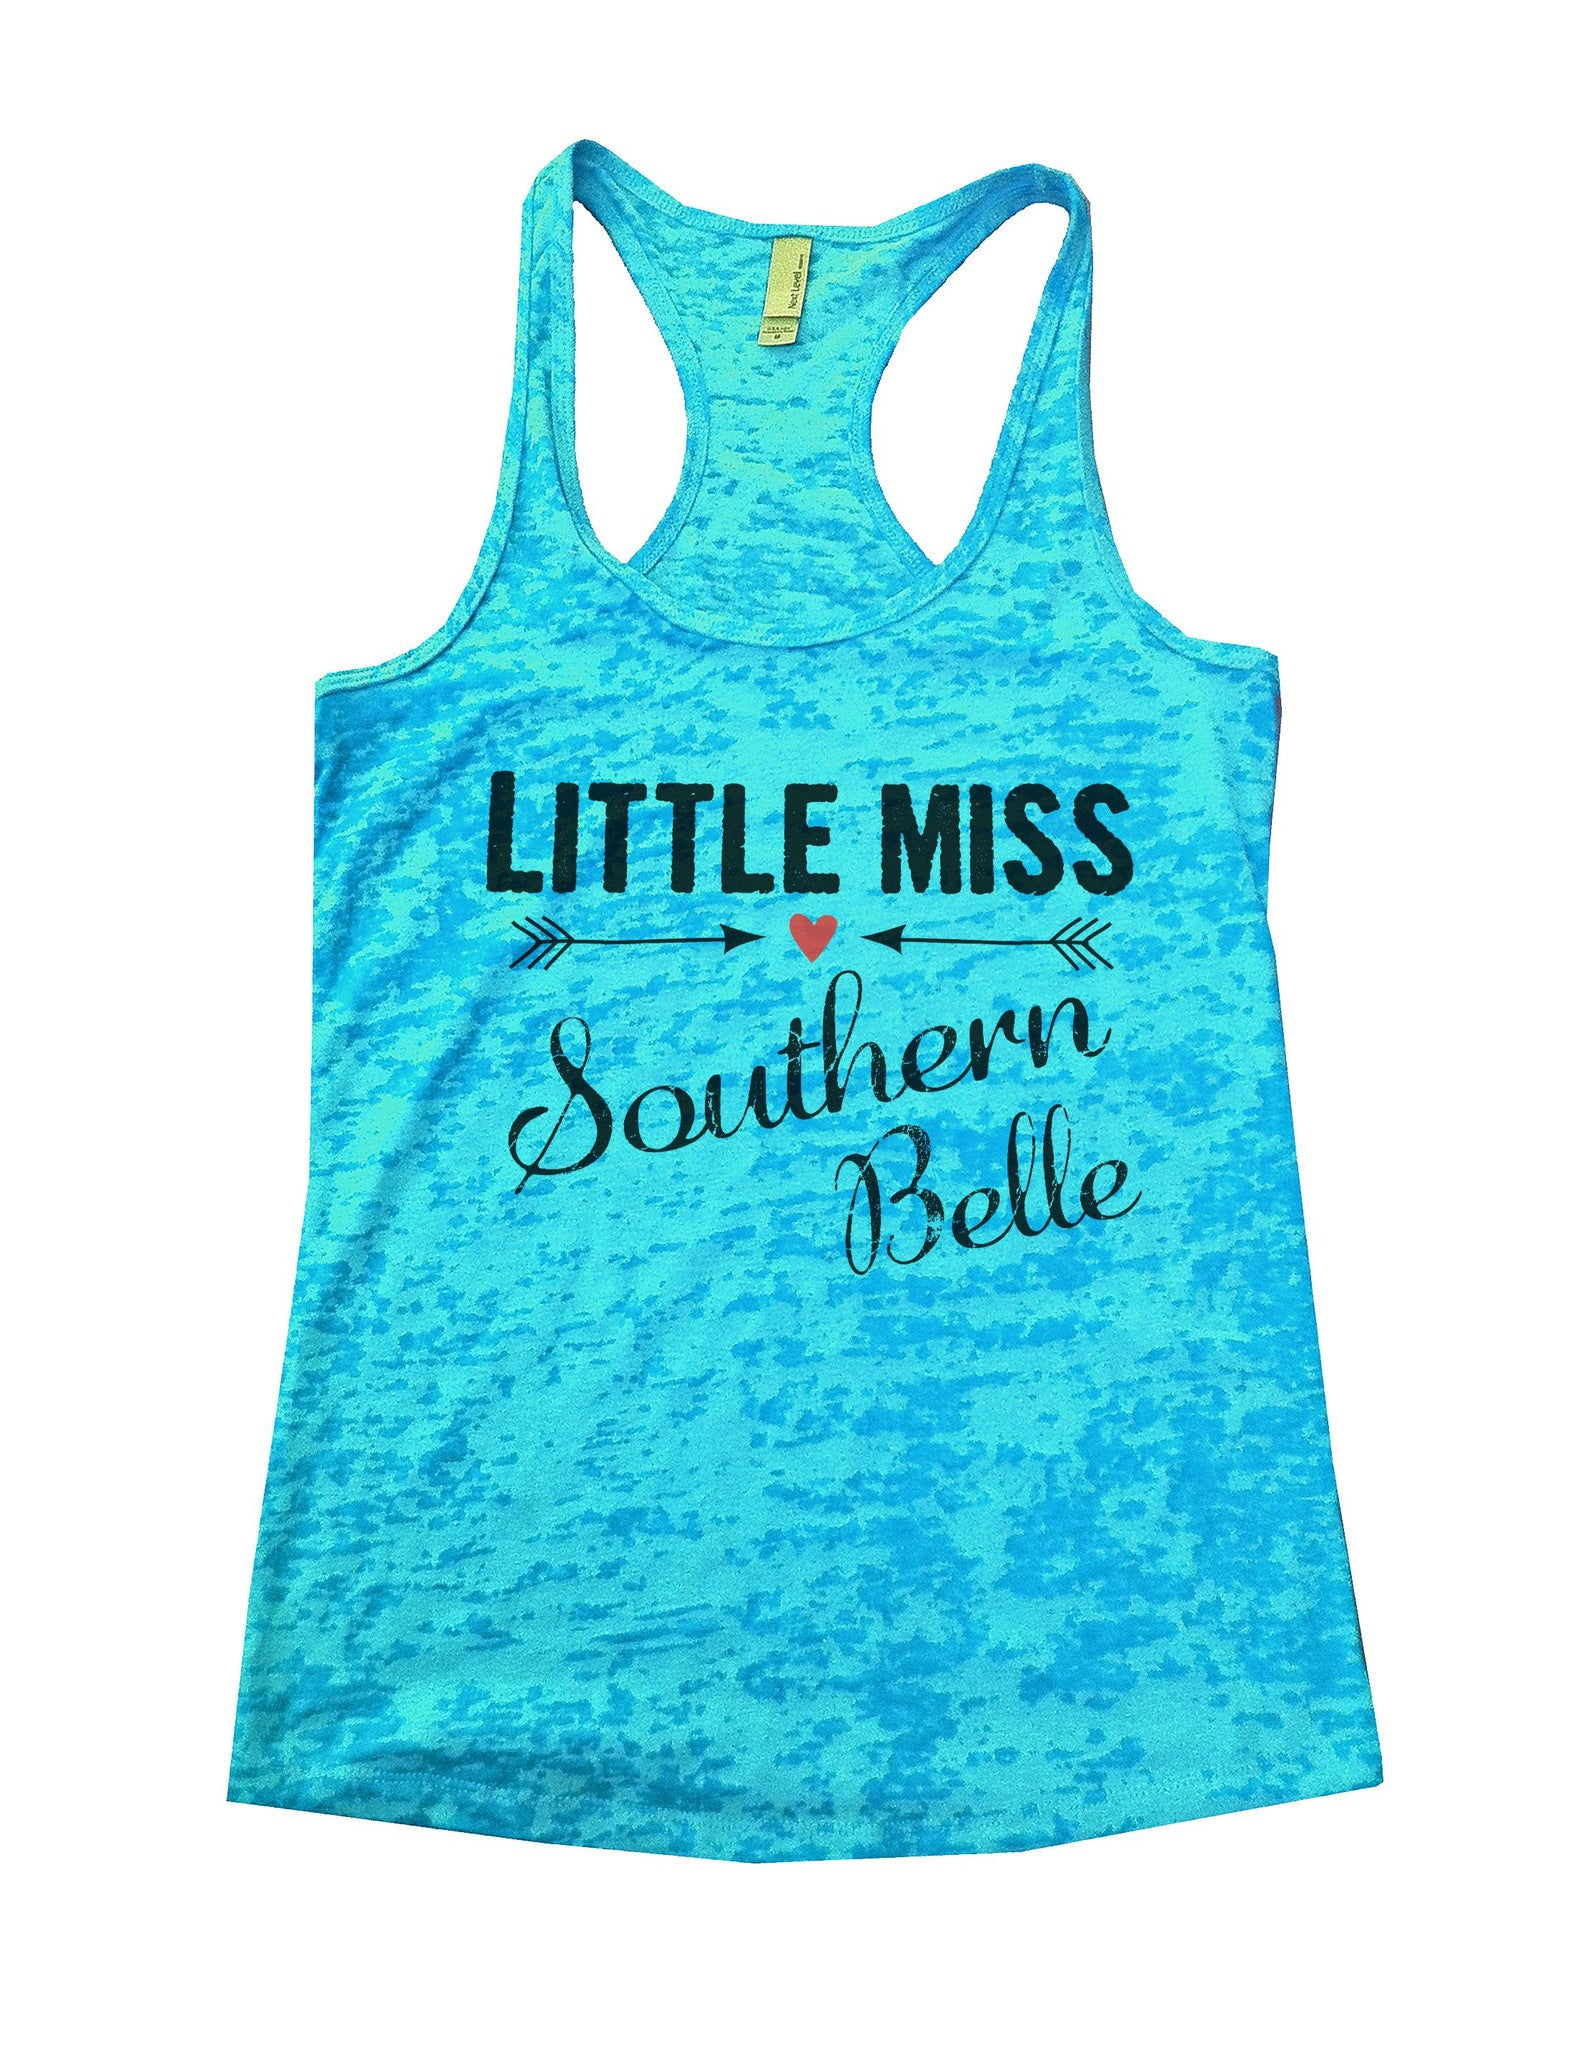 Little Miss Southern Belle Burnout Tank Top By BurnoutTankTops.com - 786 - Funny Shirts Tank Tops Burnouts and Triblends  - 4